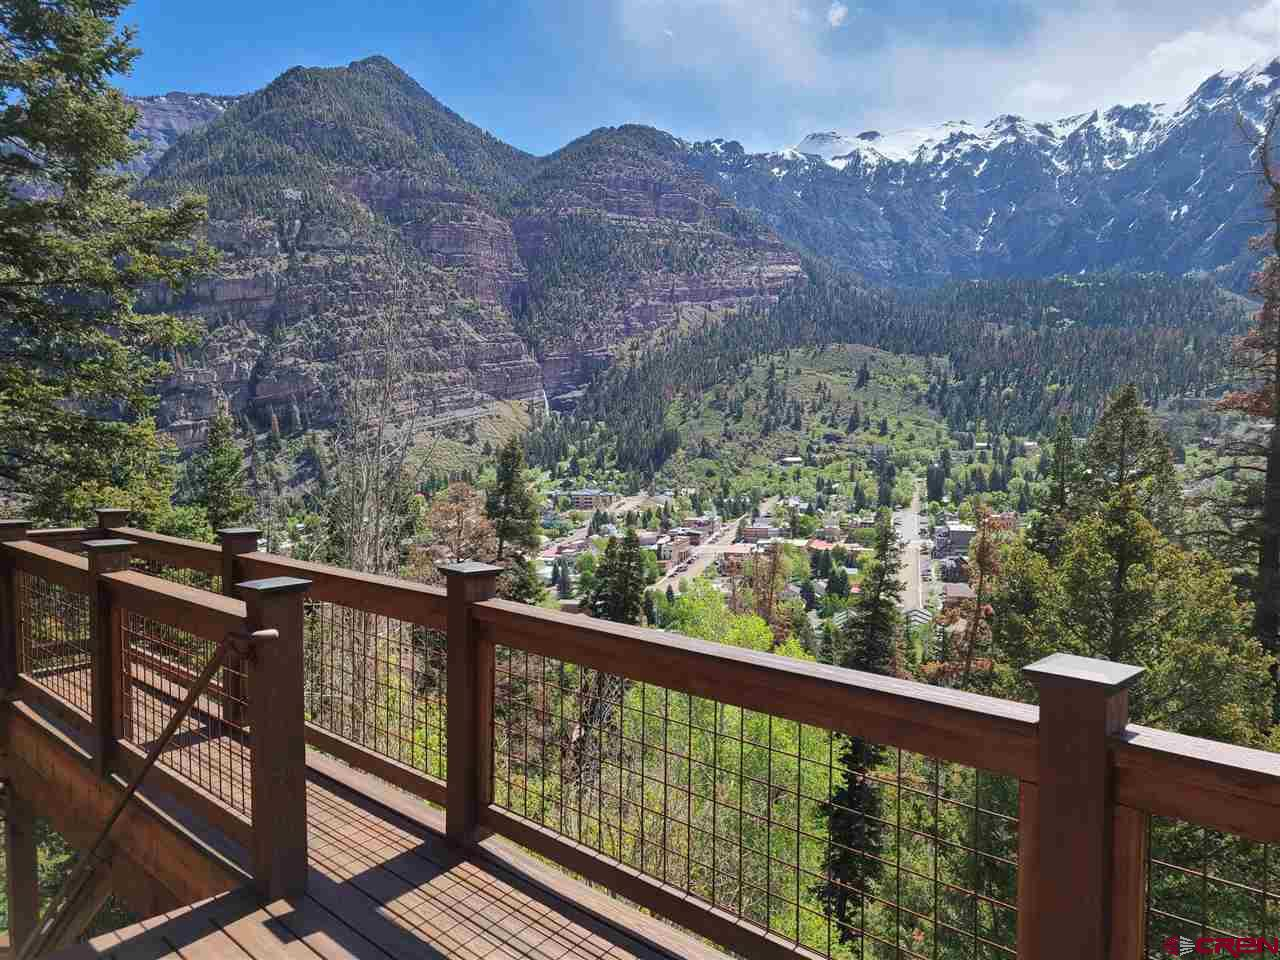 The most fabulous views above Ouray and complete privacy! 4 acres bordering National Forest on two sides with a 6.4 acre green belt below the home. Walk inside to luxury! 3 bedrooms, one with bunks, 4 full bathrooms, stone fireplace with crystals, deck looking out over Ouray and surrounding mountains, hot tub on lower patio, and a charming gas firepit on the side of the hill. Comes completely furnished - bring your toothbrush.  Stunning views in all directions are yours from this unique property! This three bedroom, four full bath home was completely renovated in 2010 with high end finishes and custom furniture throughout. The original wood burning fireplace remains and is constructed using local stones, geodes and crystals. The home is being sold completely furnished.   Stone patios surround the home and extend behind the house to an outdoor seating area with a gas fire pit and more incredible views. The large hot tub in front of the home has impressive views to the town below and the mountains beyond where you often see the alpenglow at sunset.  Windows are present in every room and bathroom of the home to take in natural light and to enjoy the views from every location. A new deck was installed in 2018 that provides for easy outdoor entertaining or just relaxing with family and friends.   The home sits on 4 acres and is protected on all sides for complete privacy. Oak Creek forms the southern boundary, national forest surrounds it to the west and north, and the east side is adjacent to a 6.4 acre green belt conservation easement between the home and the town of Ouray. A controlling interest in the green belt is also included in the price of this home. One of the access points to the Ouray Perimeter Trail is located on the greenbelt, just a few minutes walk from your front door. While you are still within walking distance to the town of Ouray and all that it offers, the home is located in the county and is not subject to city property taxes. This property is a rar